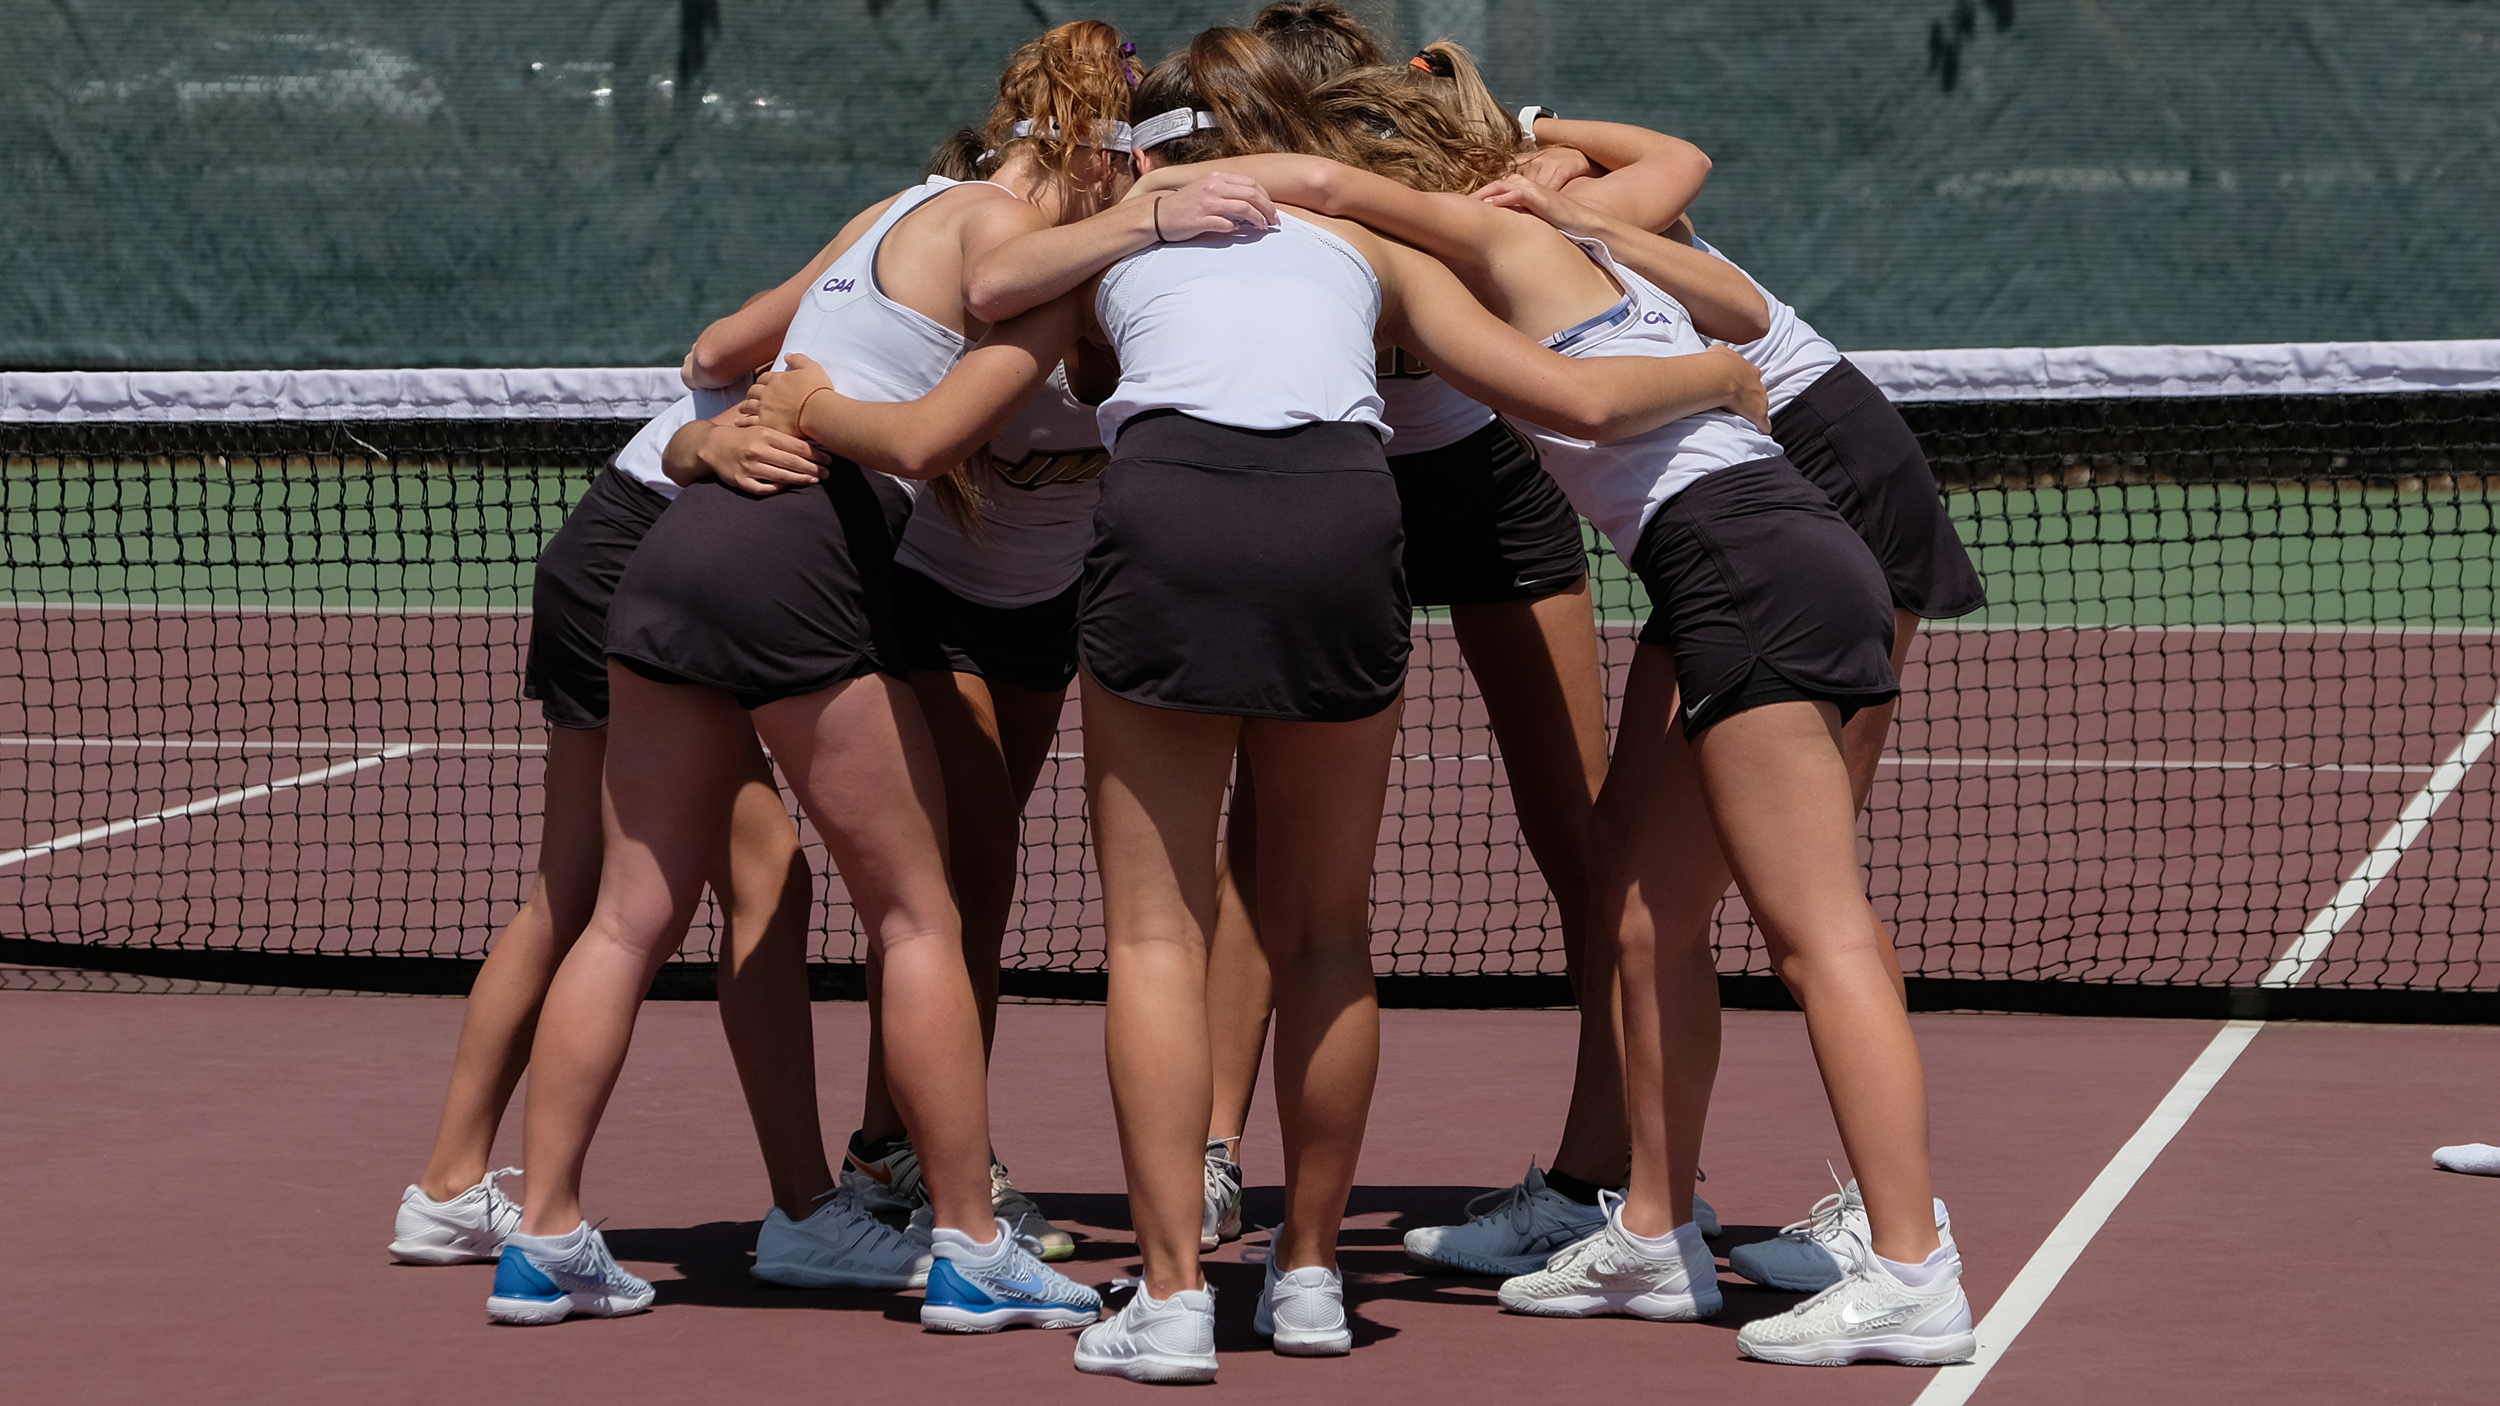 Women's Tennis: Dukes Dominate Tigers in CAA Quarterfinals